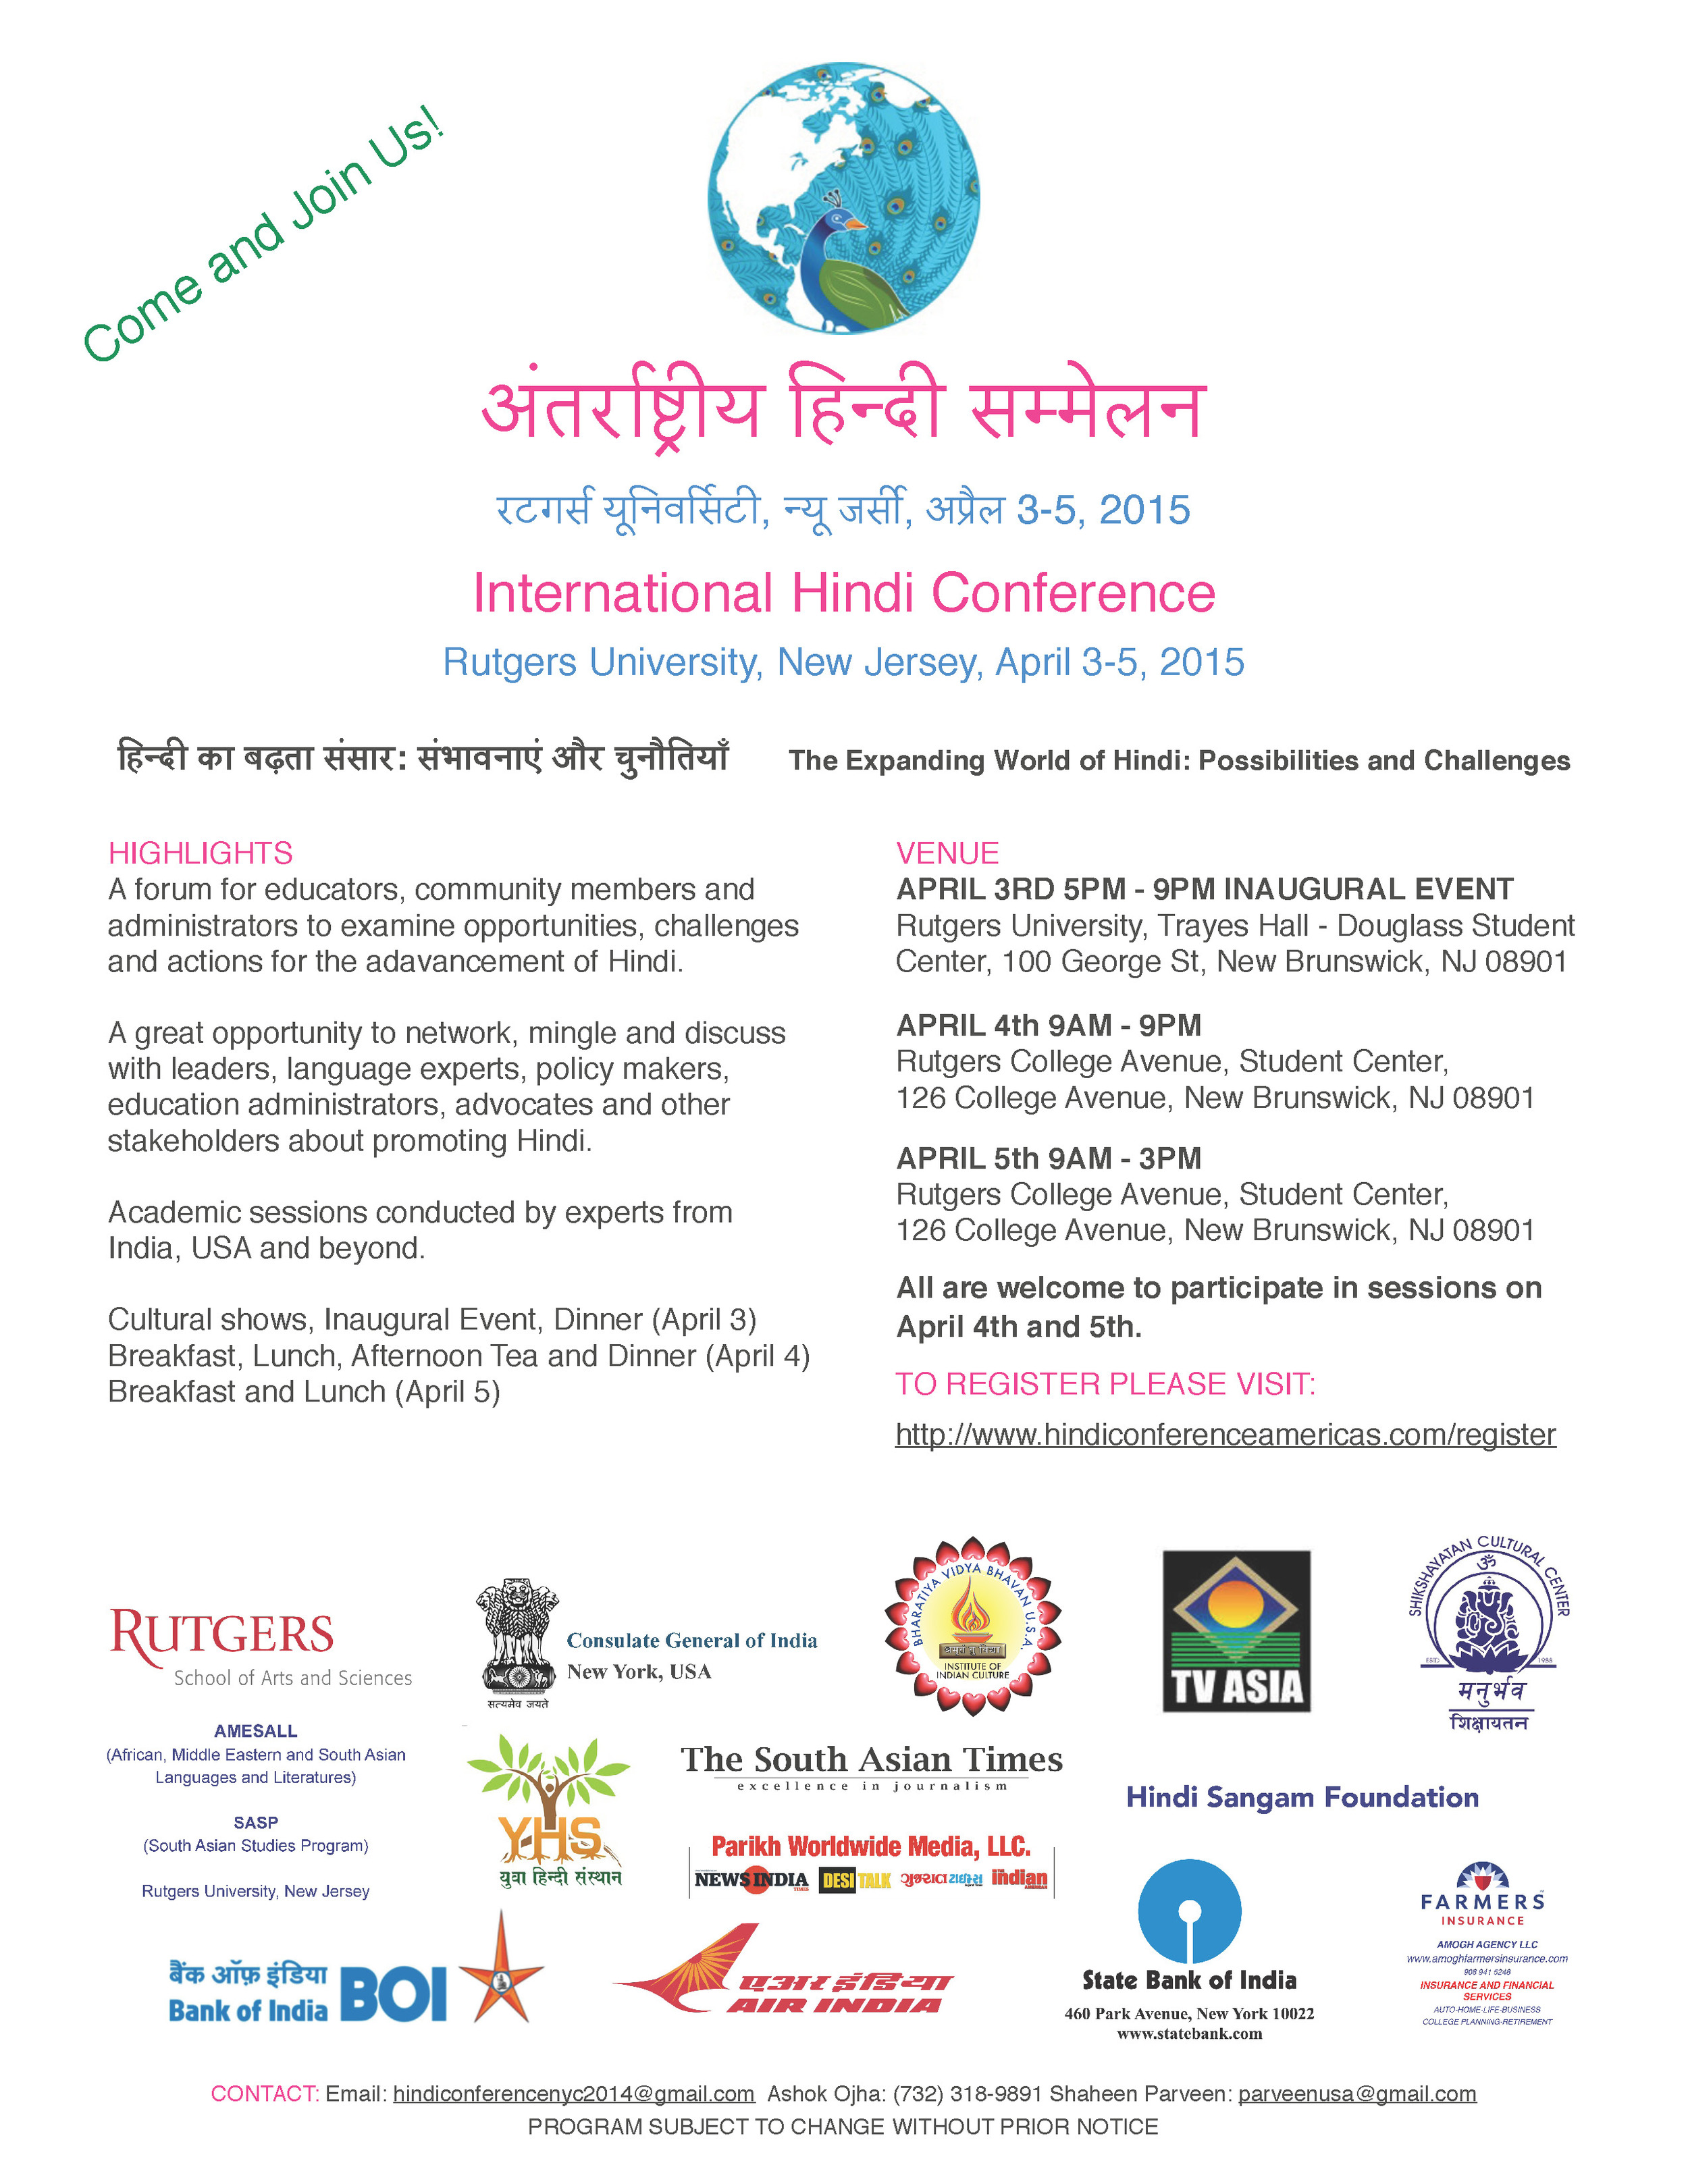 InternationalHindiConference_2015_FLYER.jpg